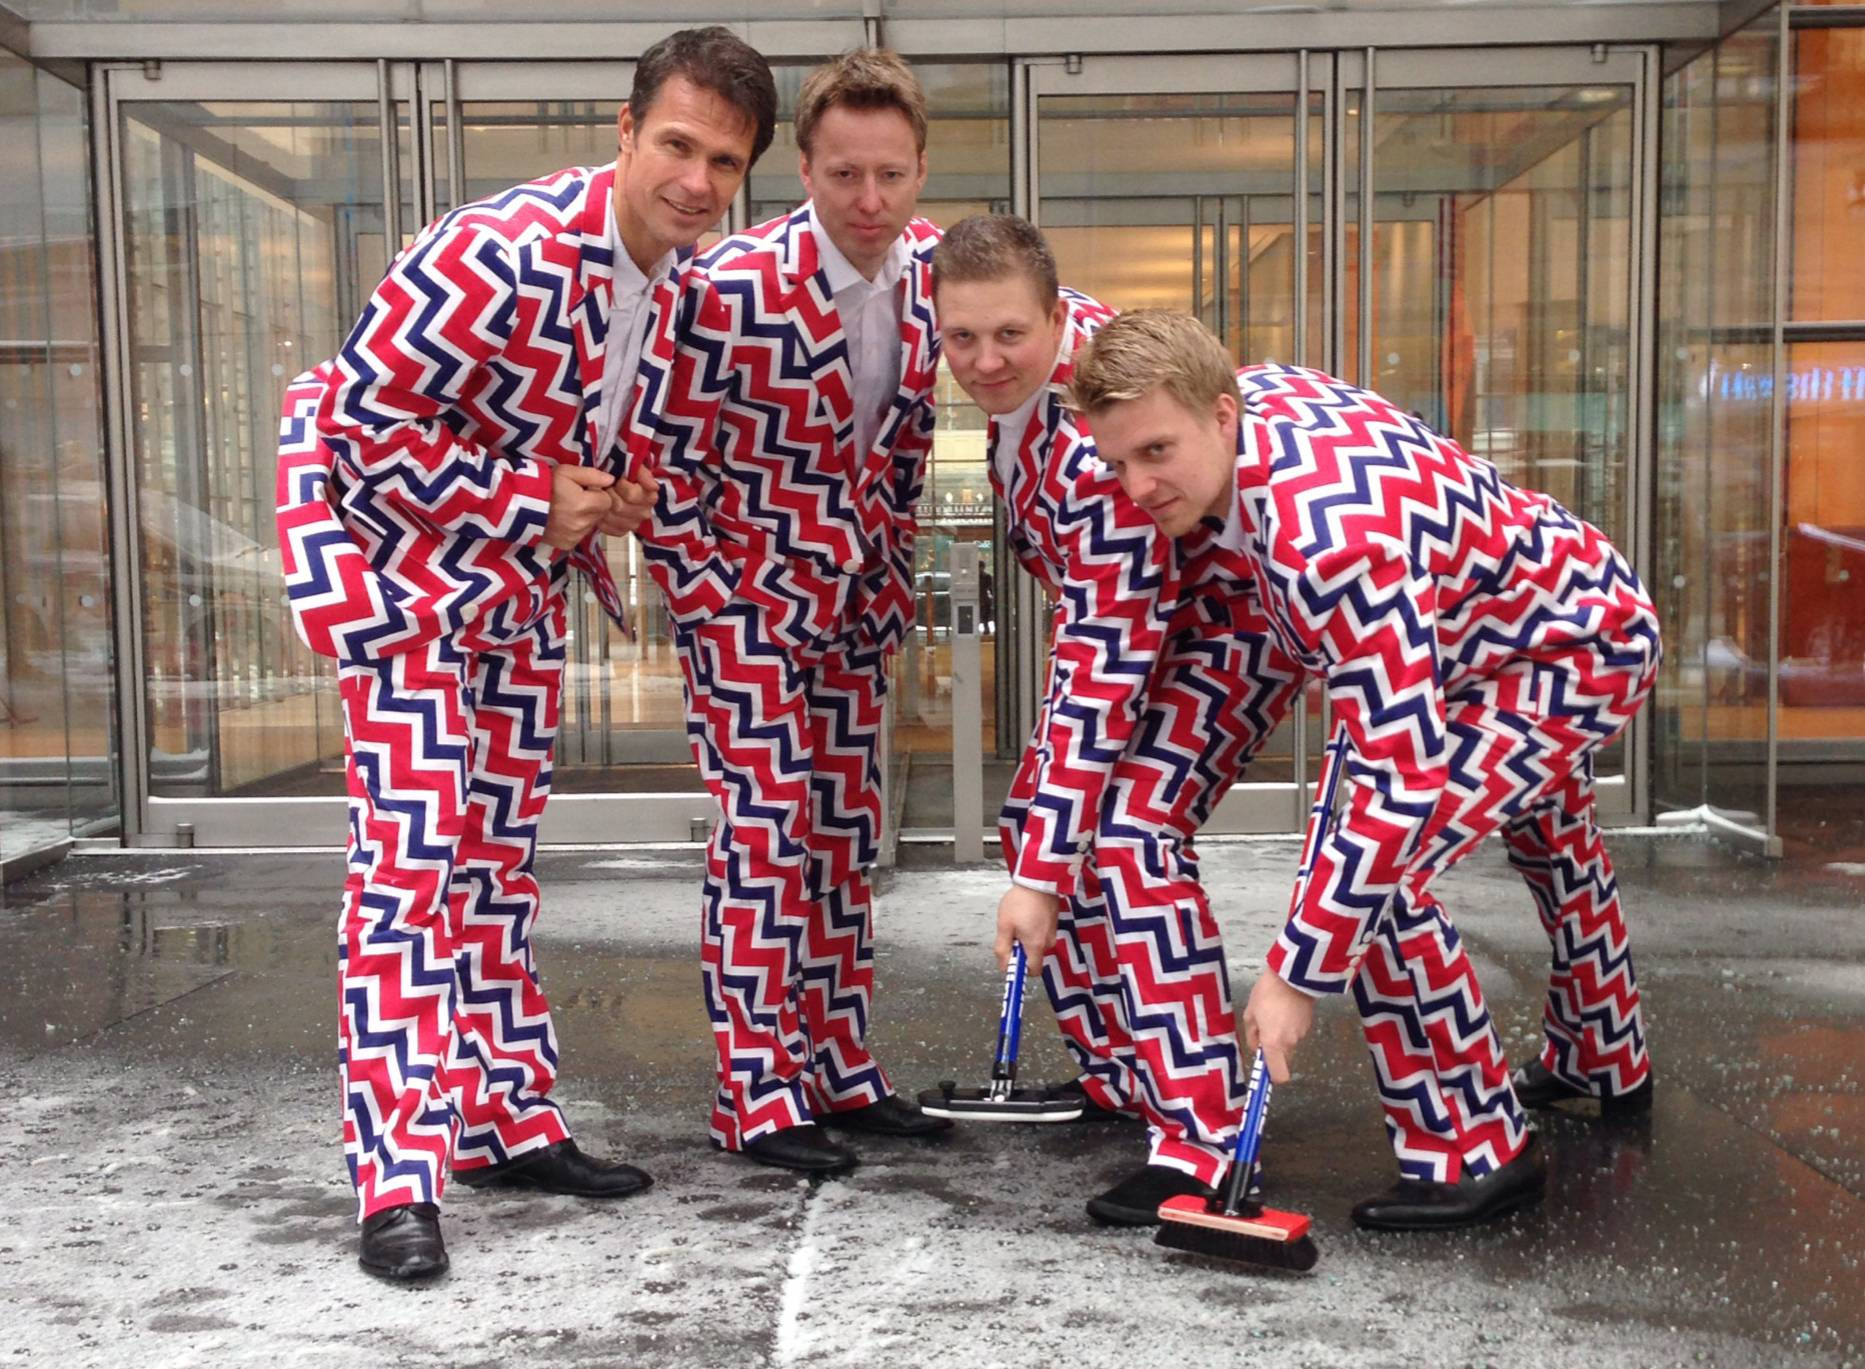 Associated Press Members of the Norway's Men's Olympic Curling Team from left, Thomas Ulsrud, Torgor Nergard, Christoffer Svae, and Havard Vad Petersson wear their new Sochi 2014 suits as they pose for a photographer in New York.